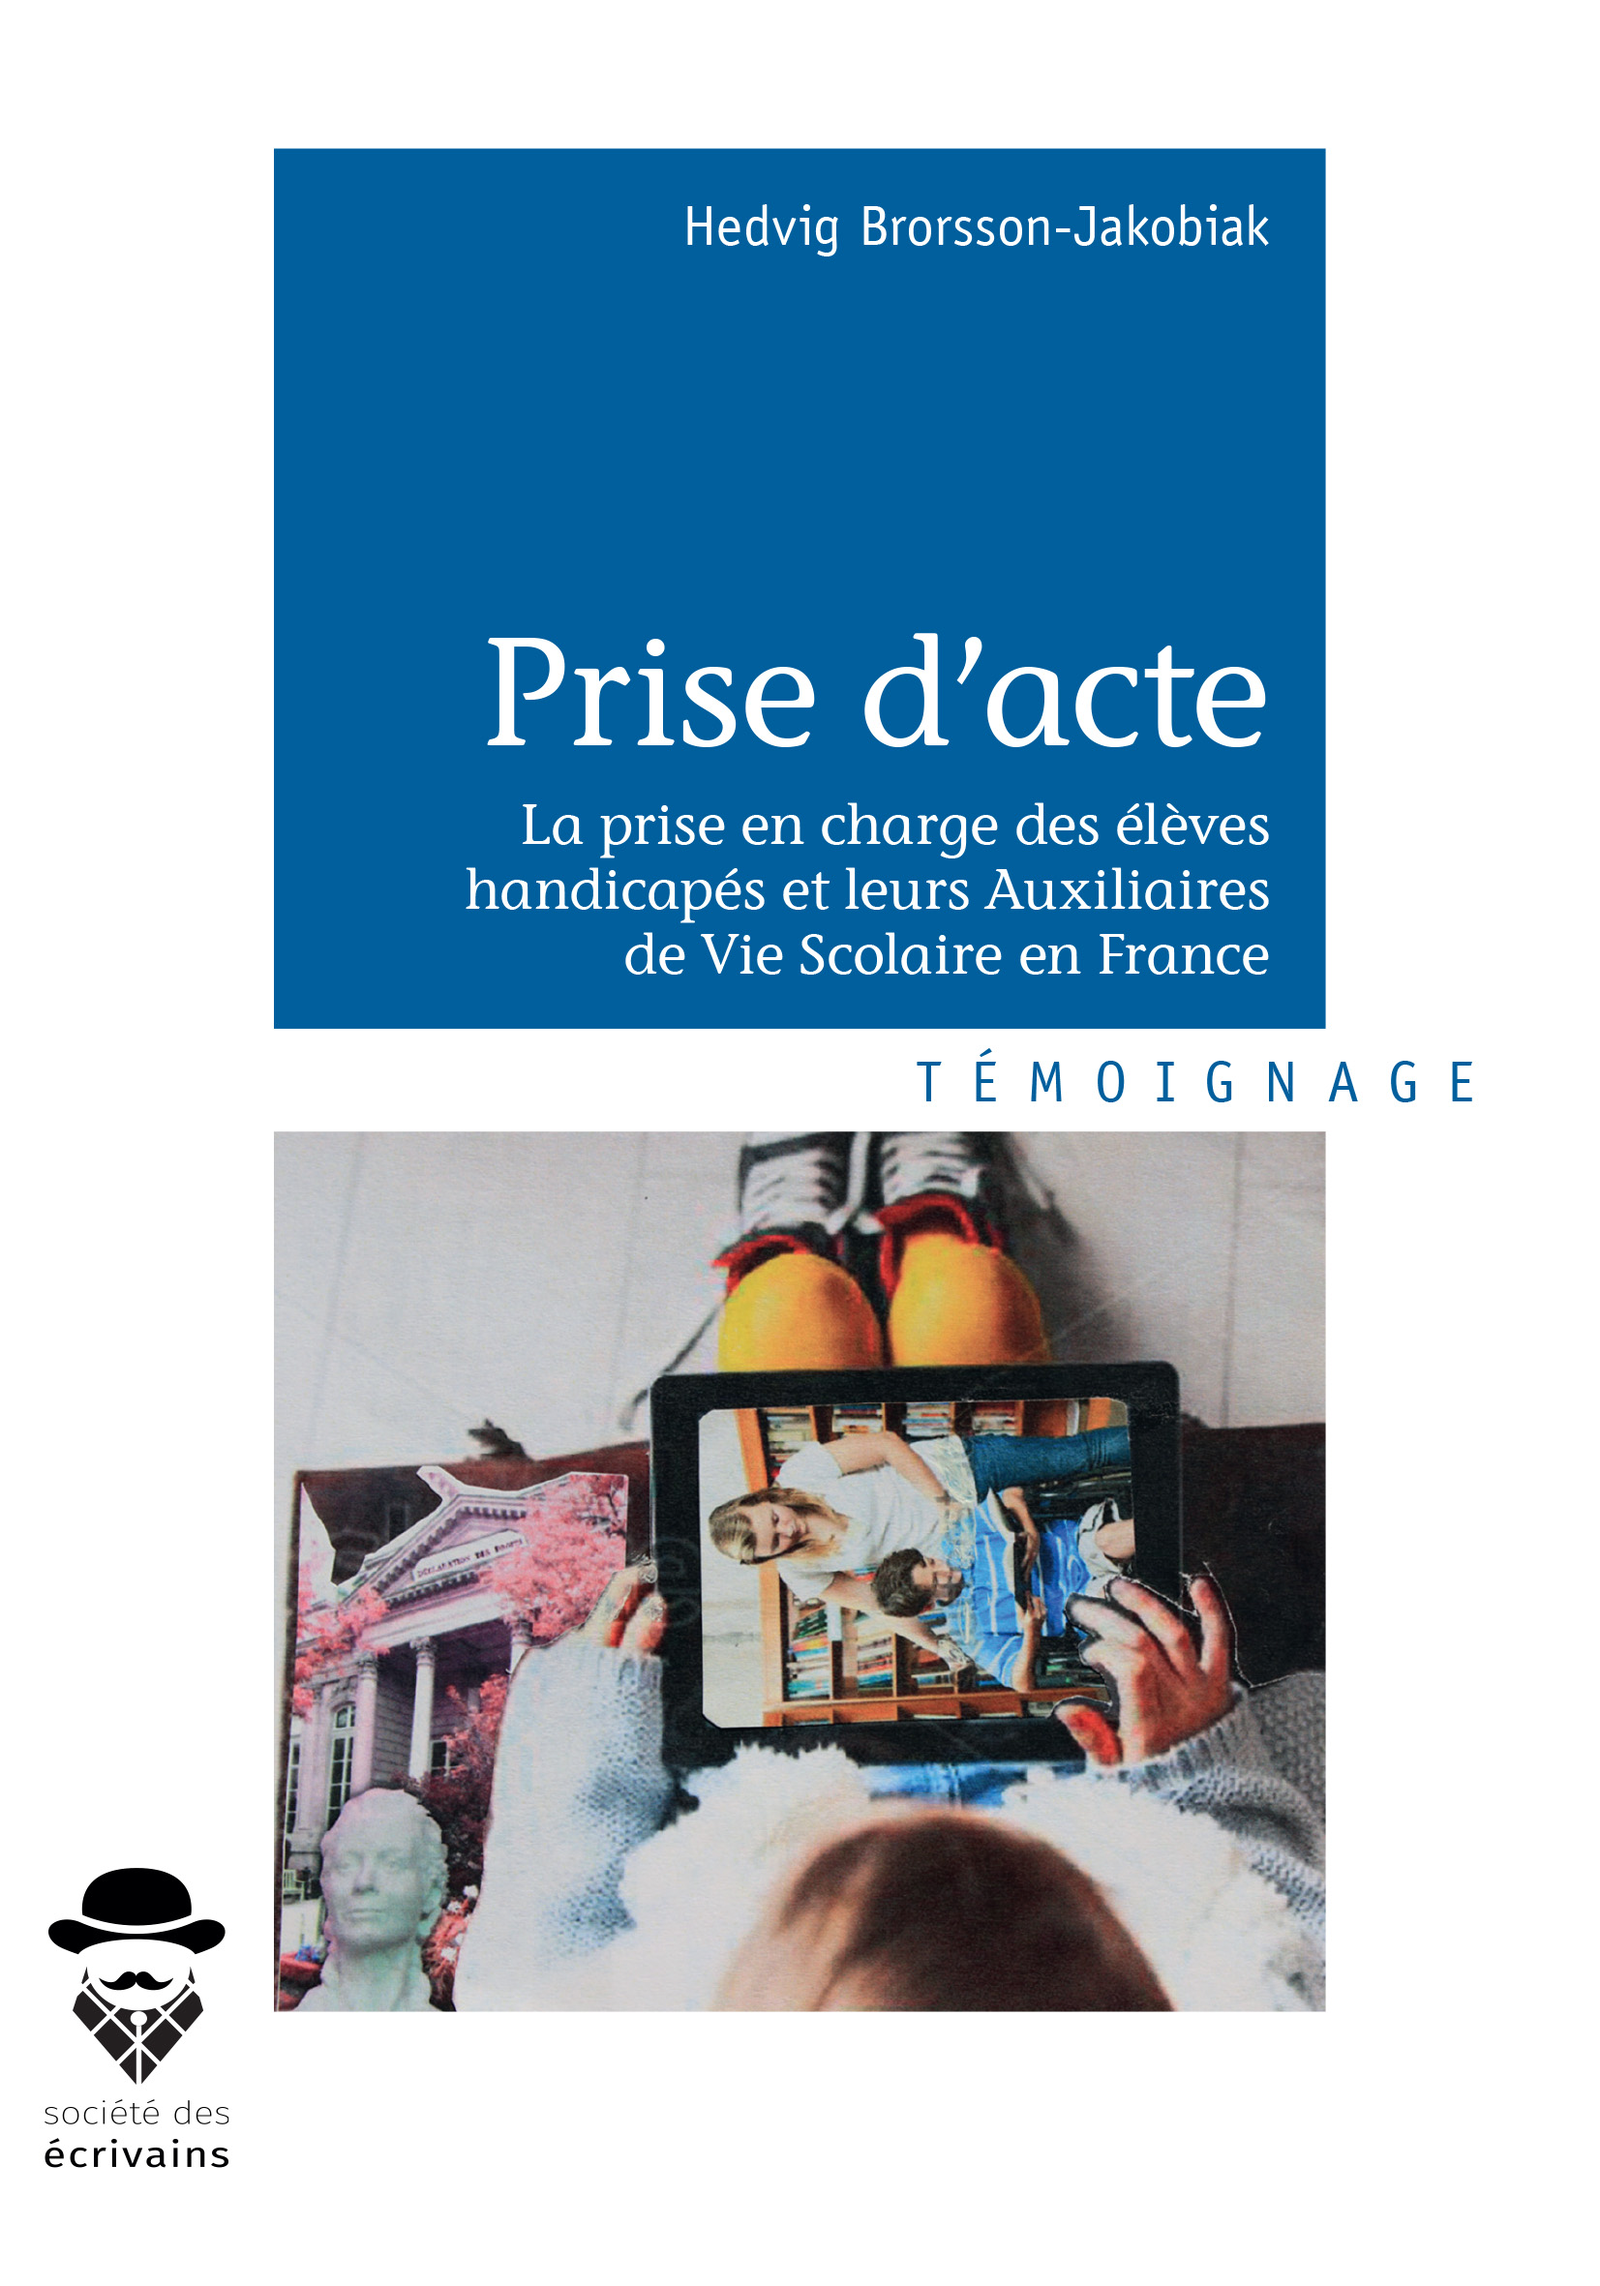 Prise d'acte - Taking note and action